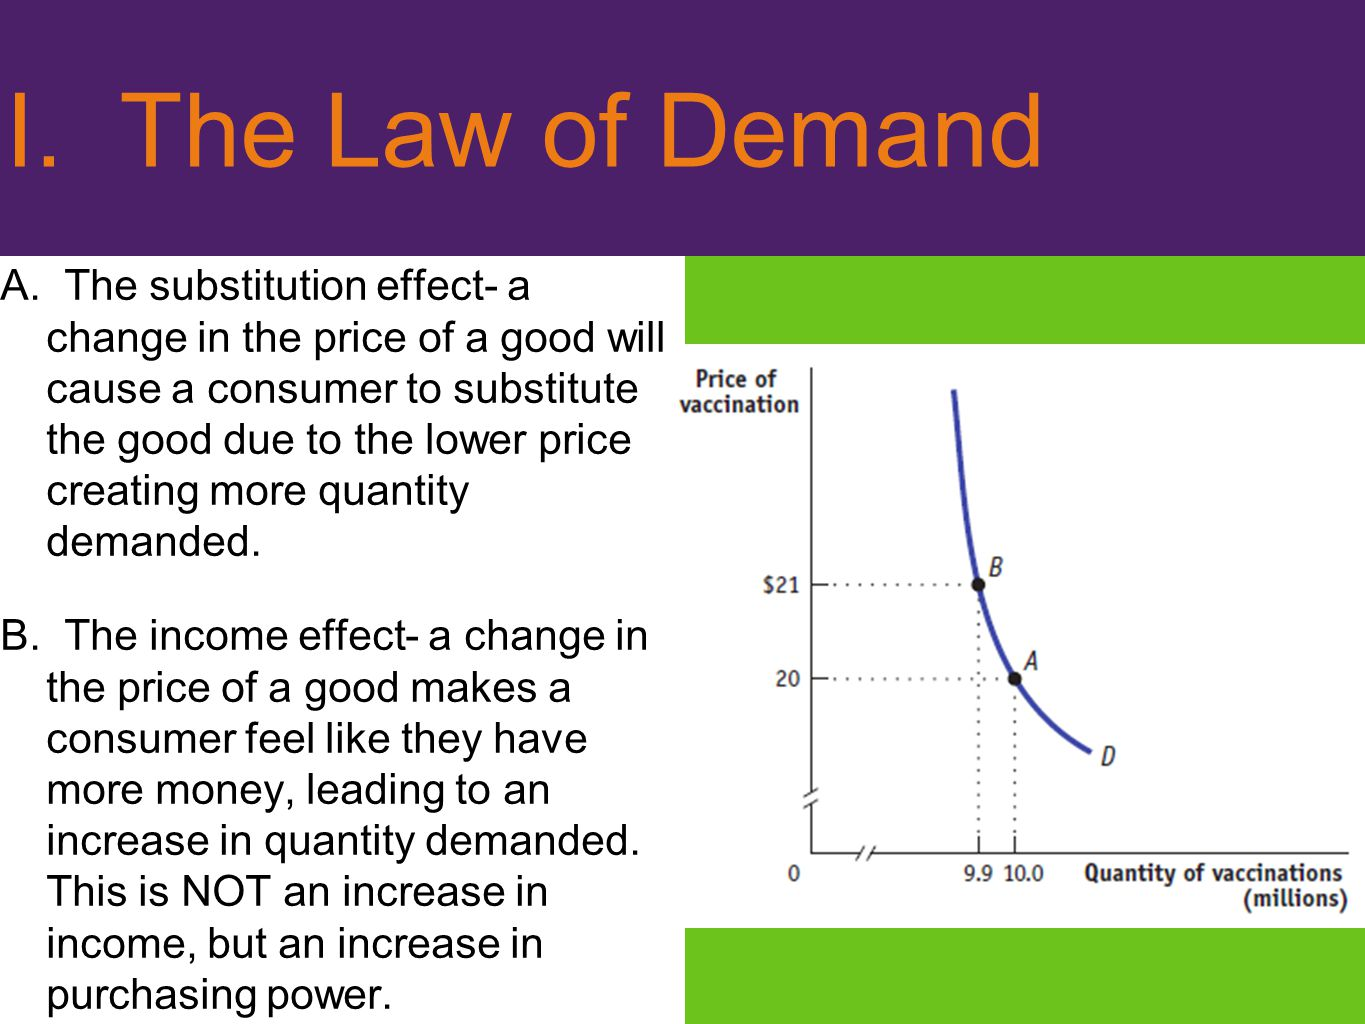 I. The Law of Demand